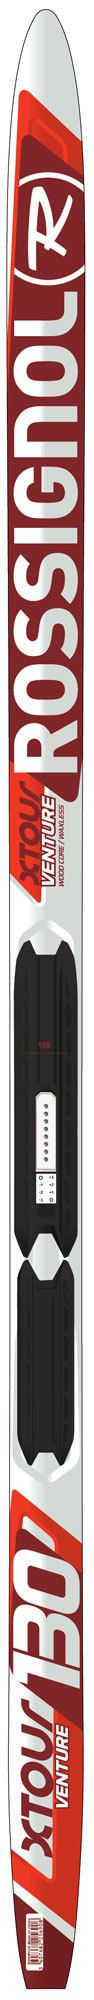 Rossignol XT-VENTURE Junior Waxless IFP/Tour JSI *In Store Only